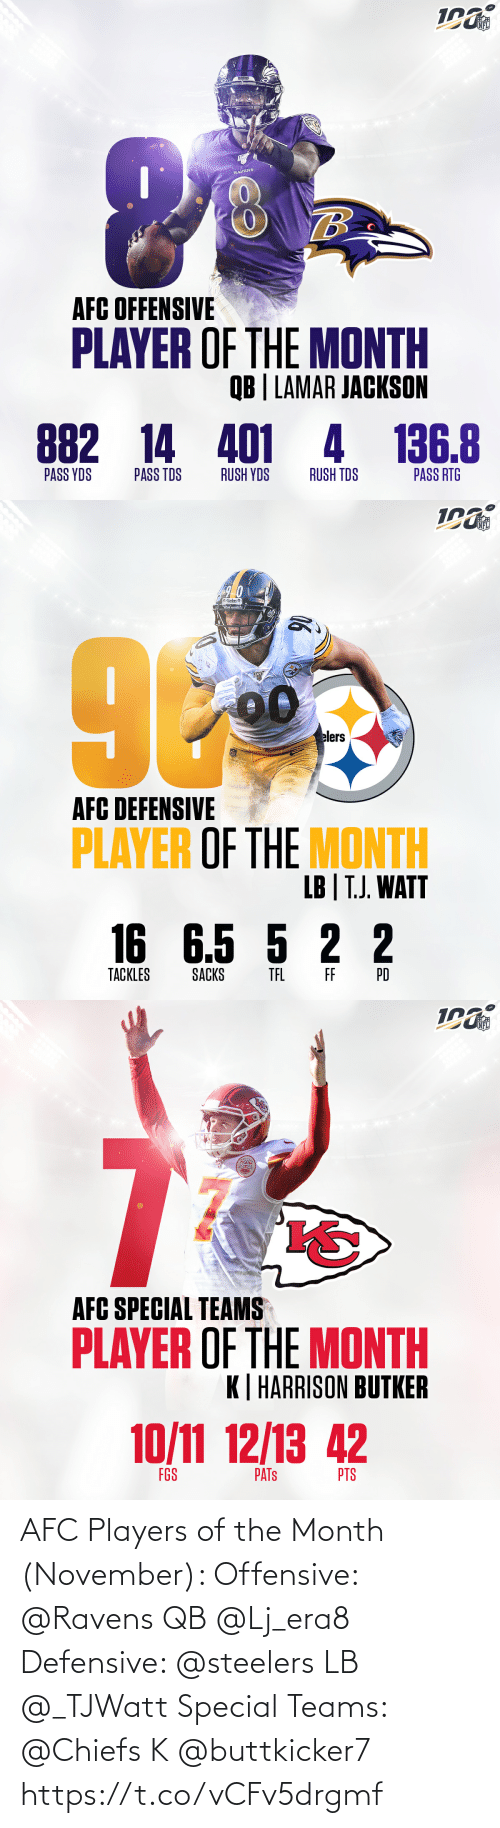 Of The Month: NFL  RAVENS  AFC OFFENSIVE  PLAYER OF THE MONTH  QB | LAMAR JACKSON  882 14 401 4 136.8  PASS YDS  PASS TDS  RUSH YDS  RUSH TDS  PASS RTG   NFL  elers  AFC DEFENSIVE  PLAYER OF THE MONTH  LB | T.J. WATT  16 6.5 5 2 2  TACKLES  SACKS  TEL  FF  PD   NFL  AFC SPECIAL TEAMS  PLAYER OF THE MONTH  K| HARRISON BUTKER  10/11 12/13 42  FGS  PTS  PATS AFC Players of the Month (November):   Offensive: @Ravens QB @Lj_era8  Defensive: @steelers LB @_TJWatt  Special Teams: @Chiefs K @buttkicker7 https://t.co/vCFv5drgmf